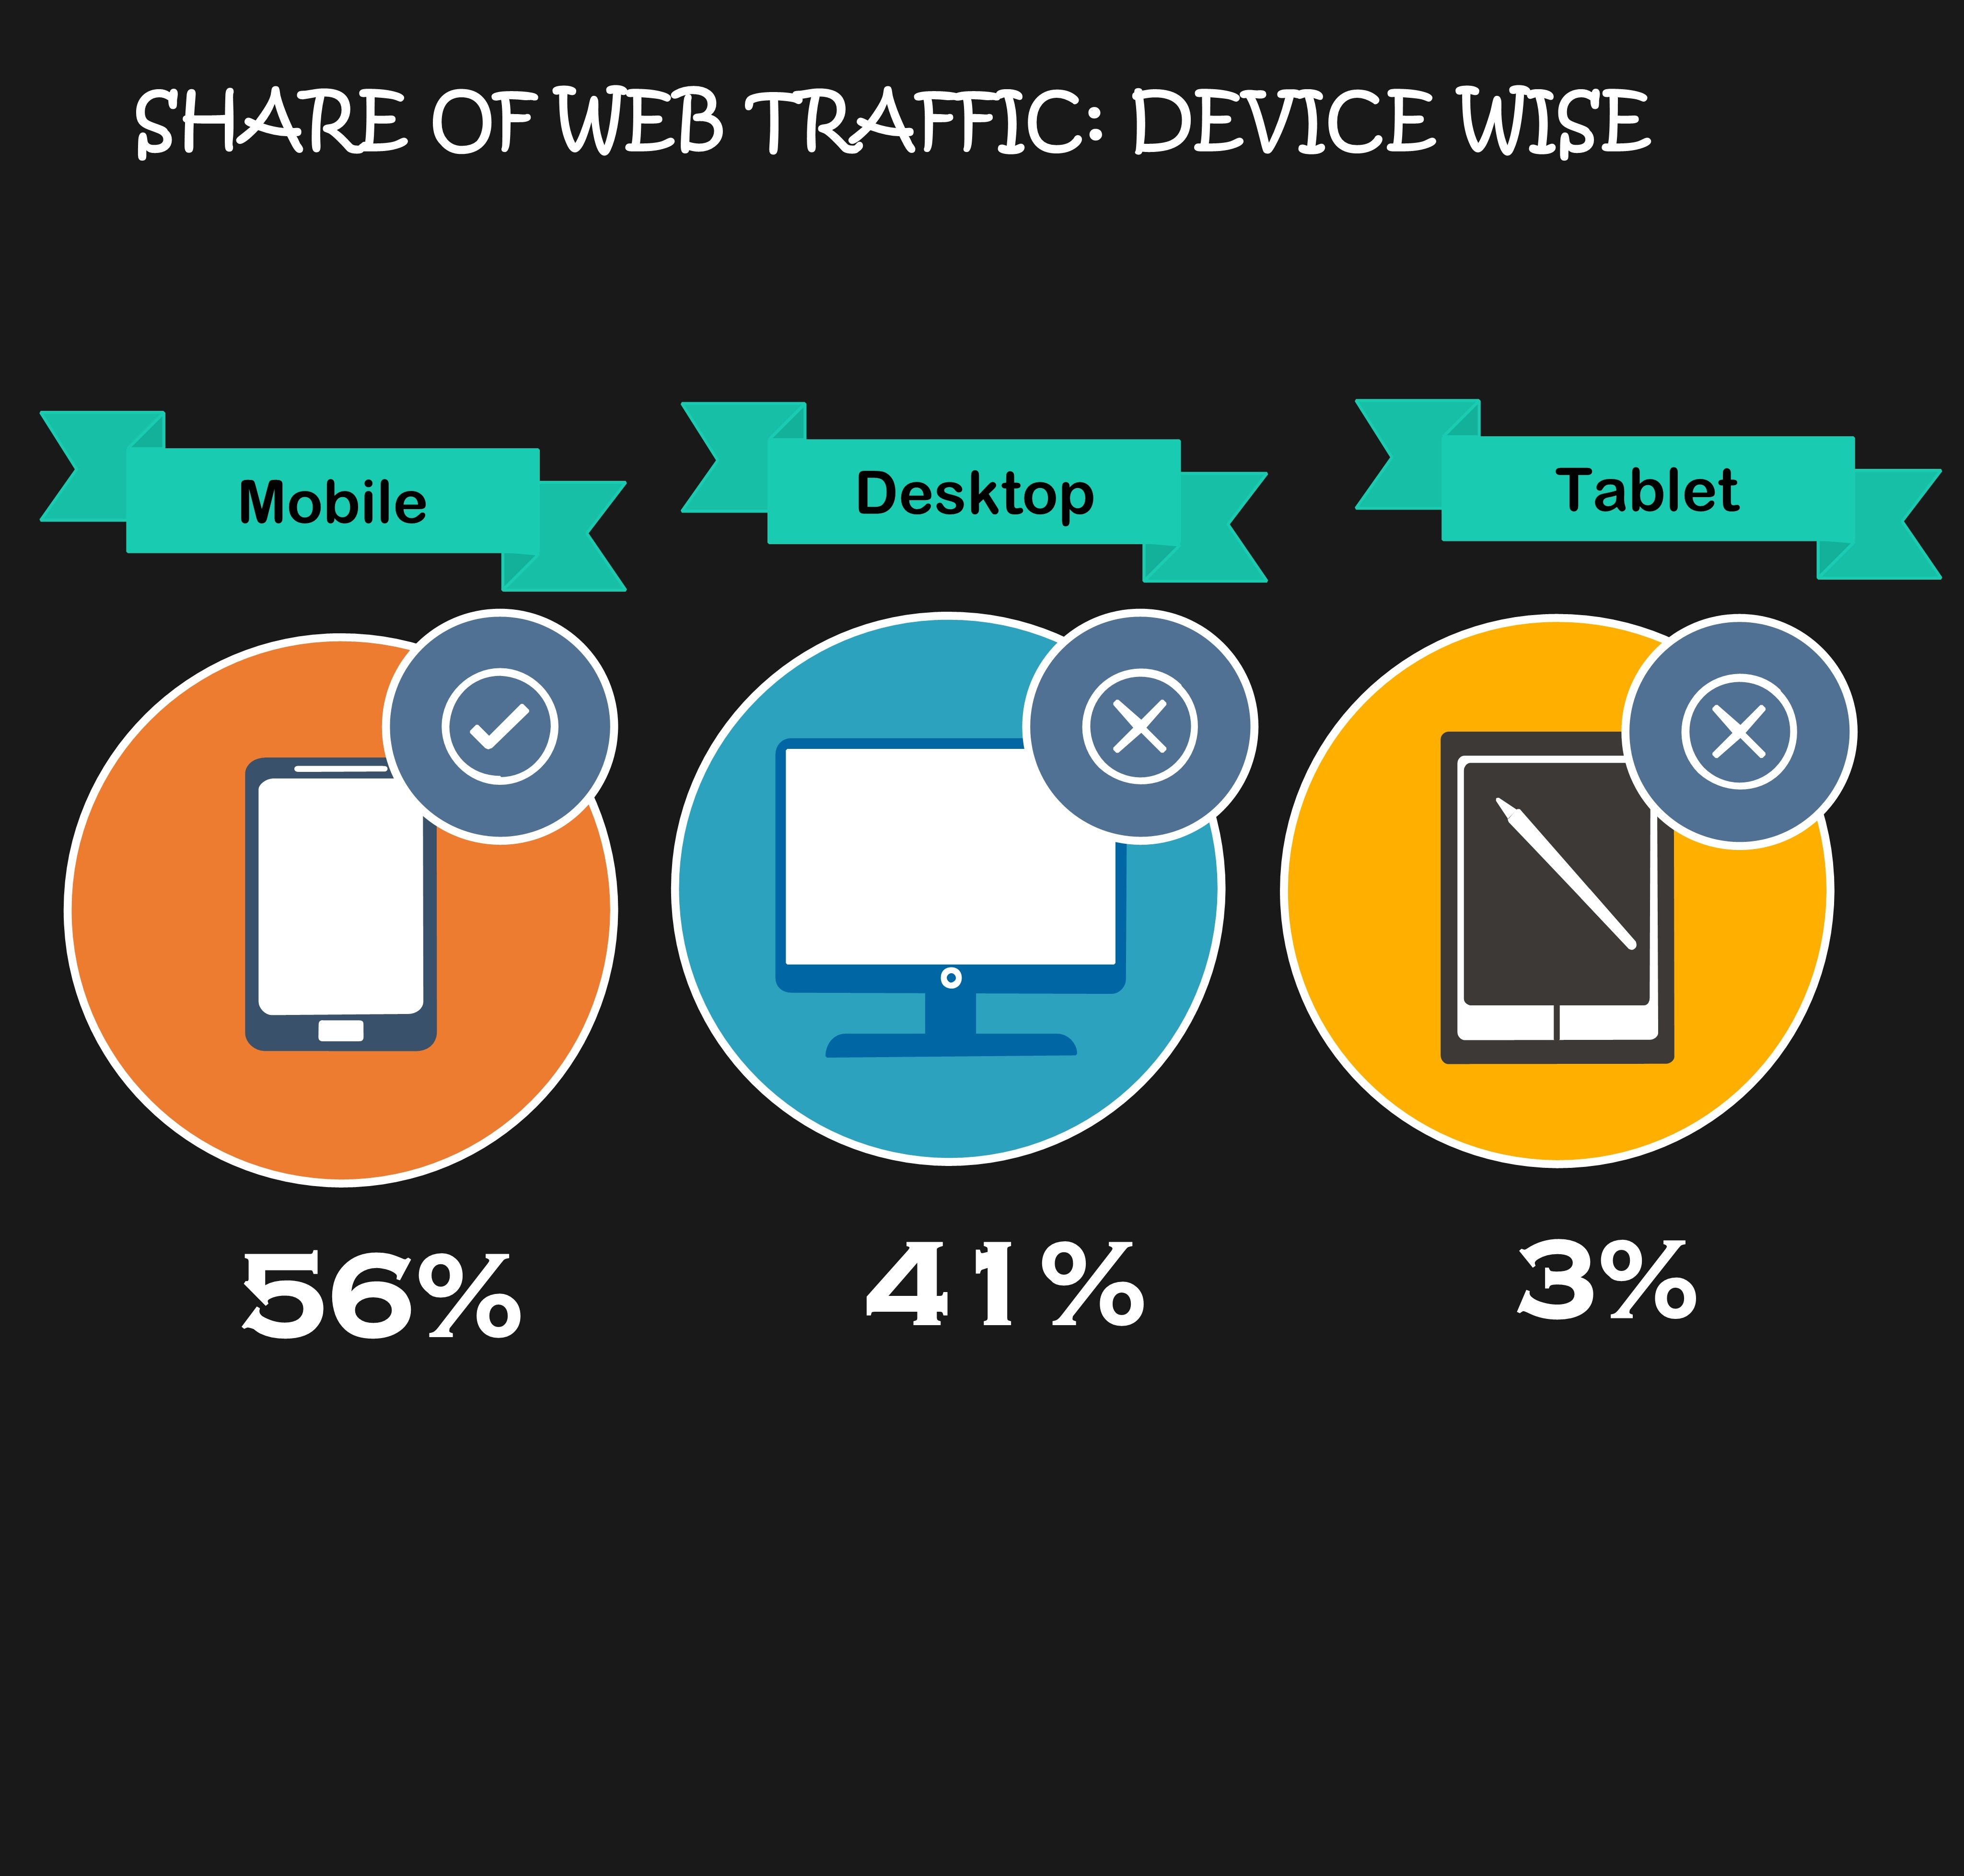 Device Wise Share of Web Traffic for Mobile and Desktop Device